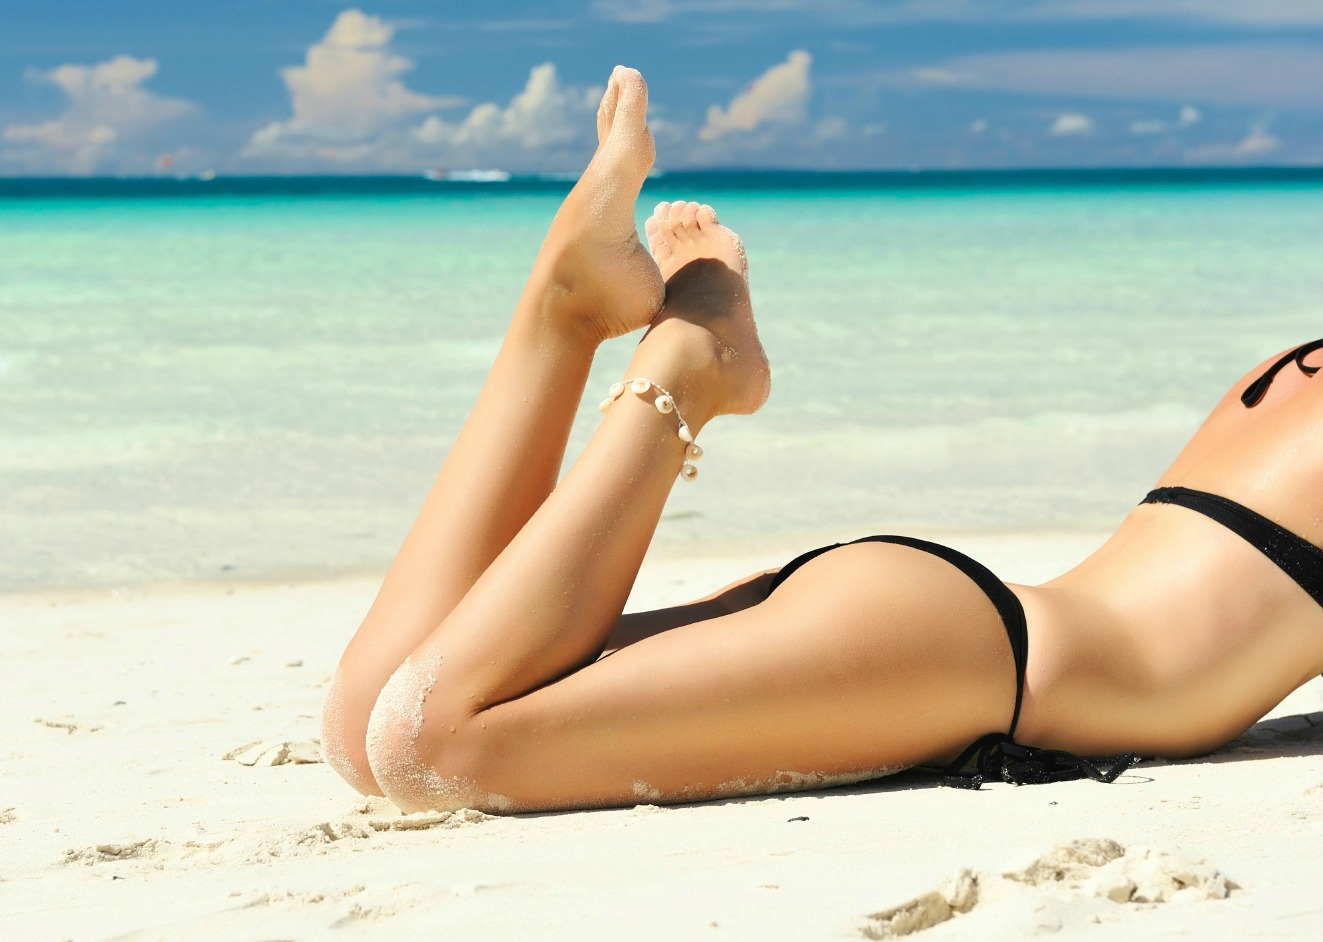 Vein Free Young Legs on Tropical Beach